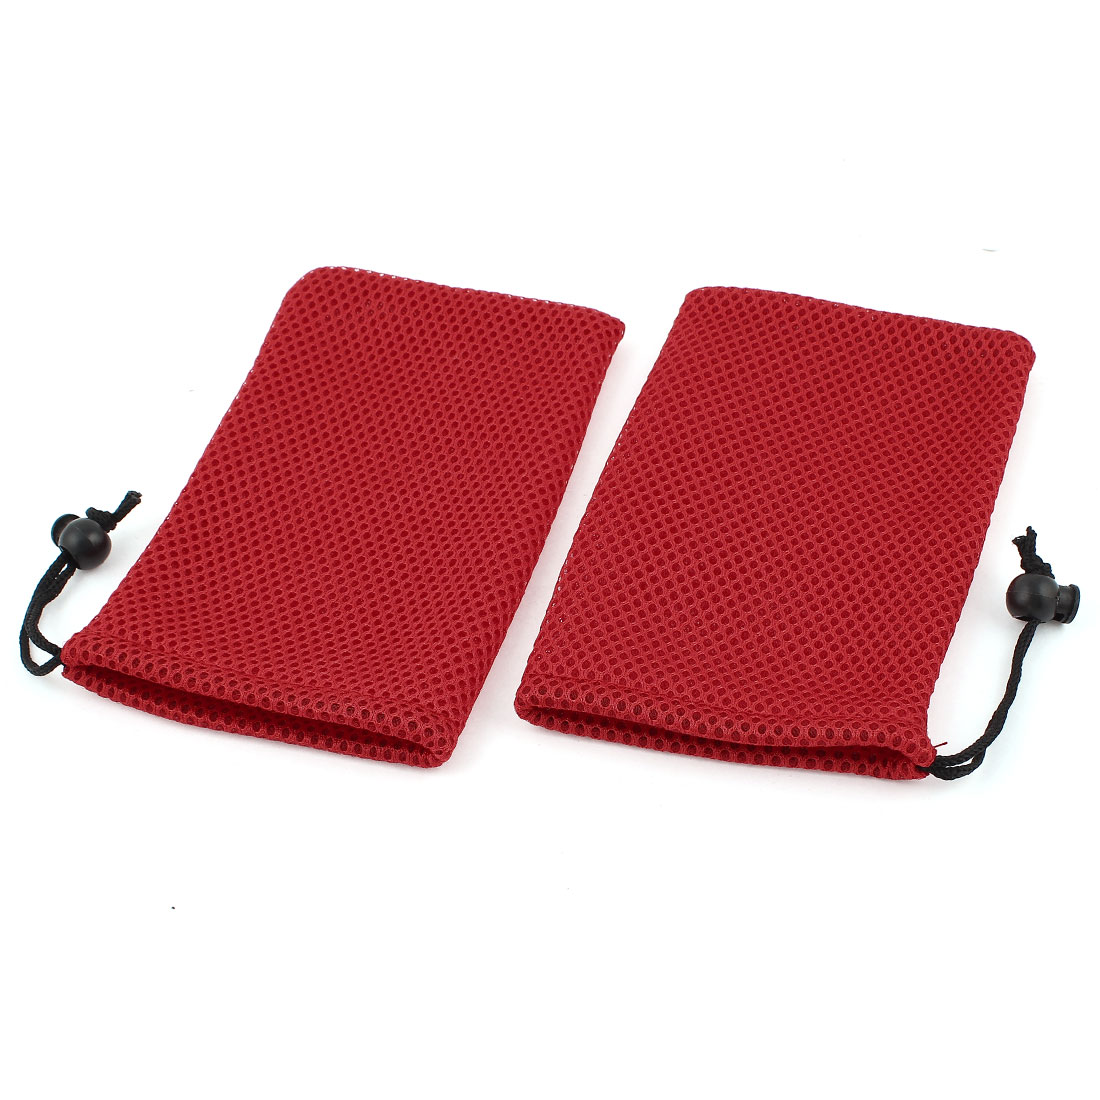 2 Pieces Red Mesh Mp3 Mp4 Cell Phone Mobilephone Pouch Bag